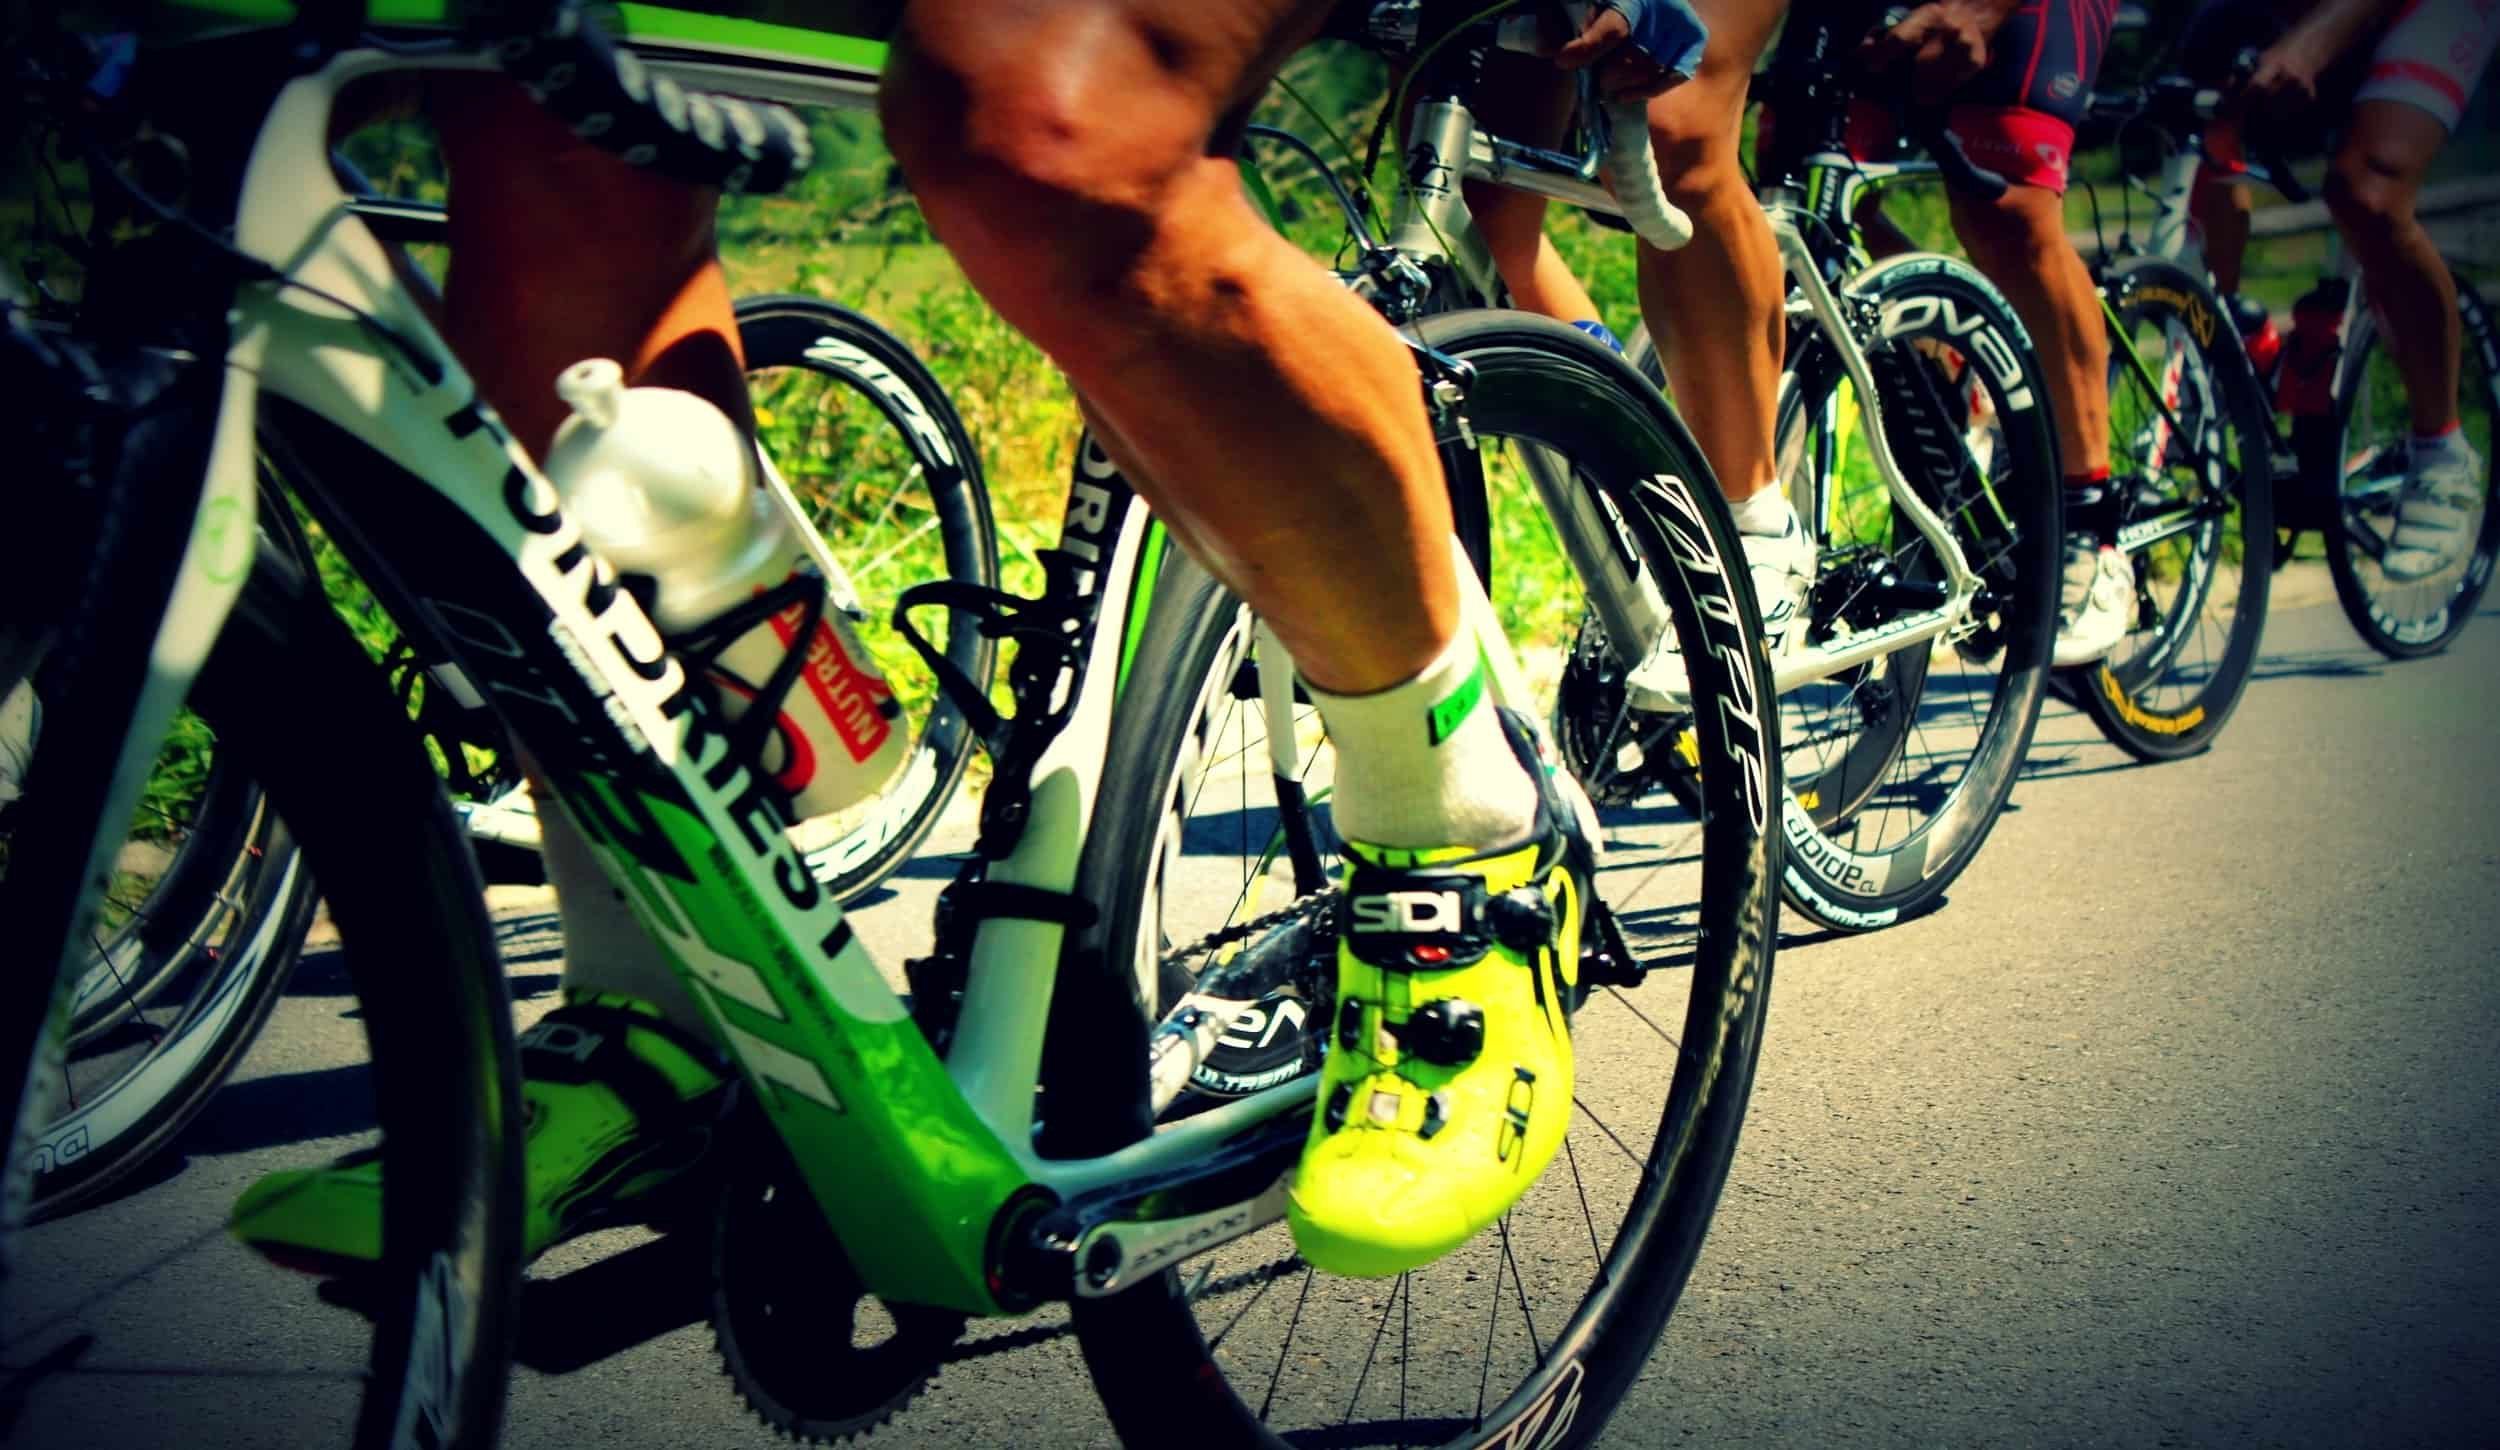 what muscles are targeted in cycling